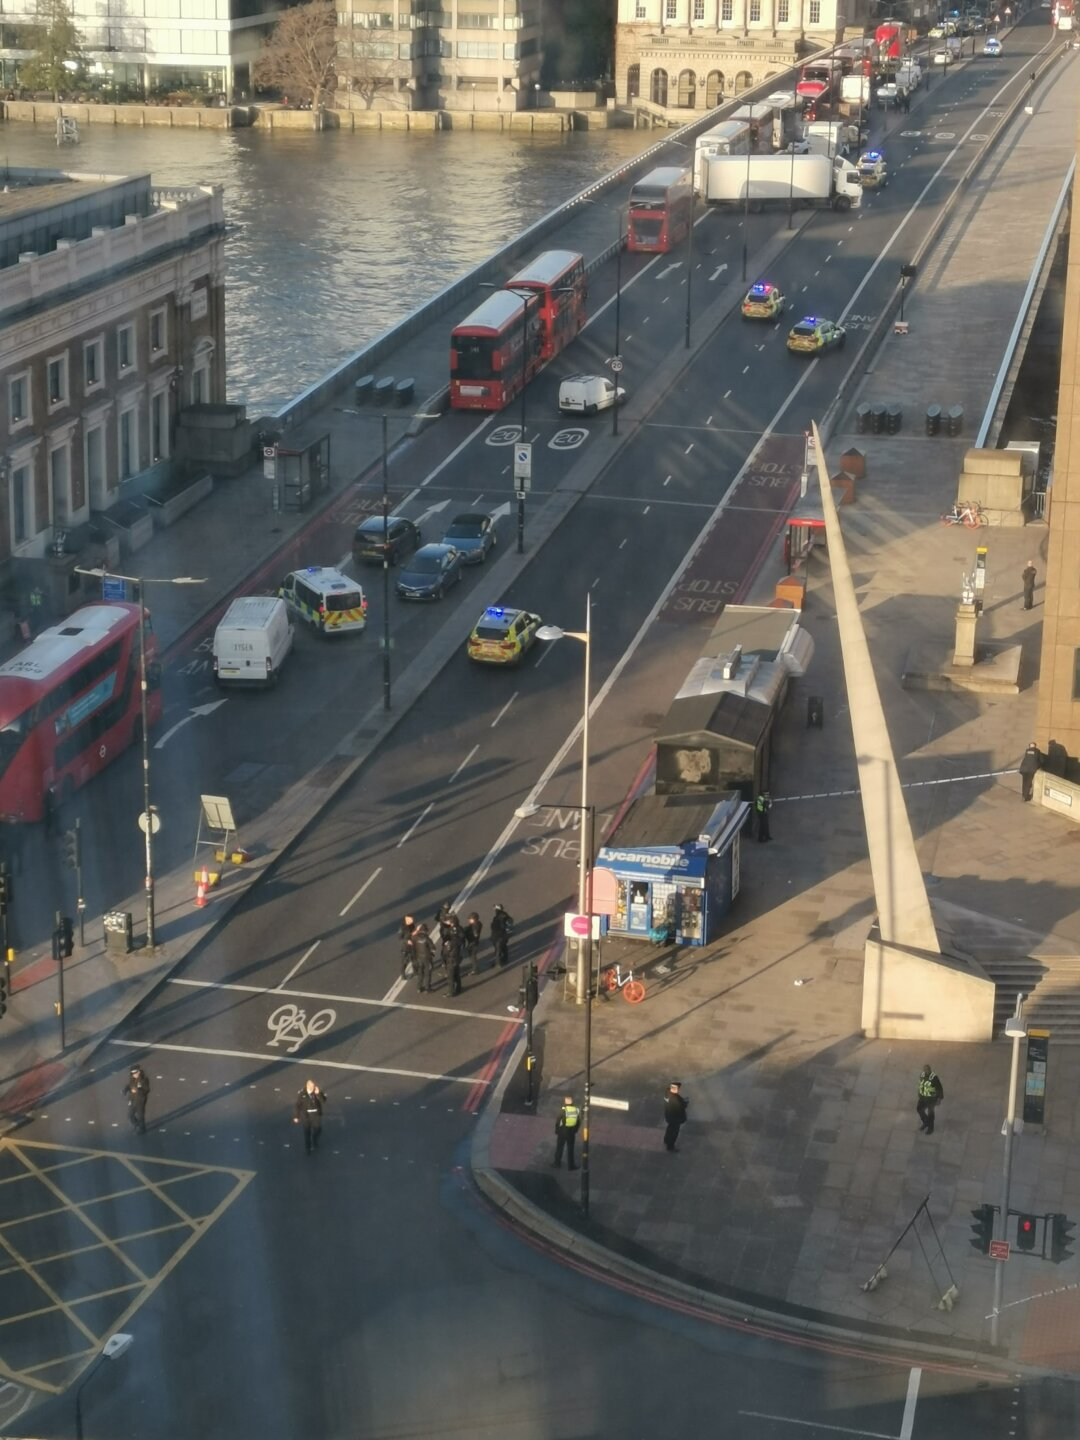 Photos: Suspect killed and multiple people injured in 'terror incident' near LondonBridge